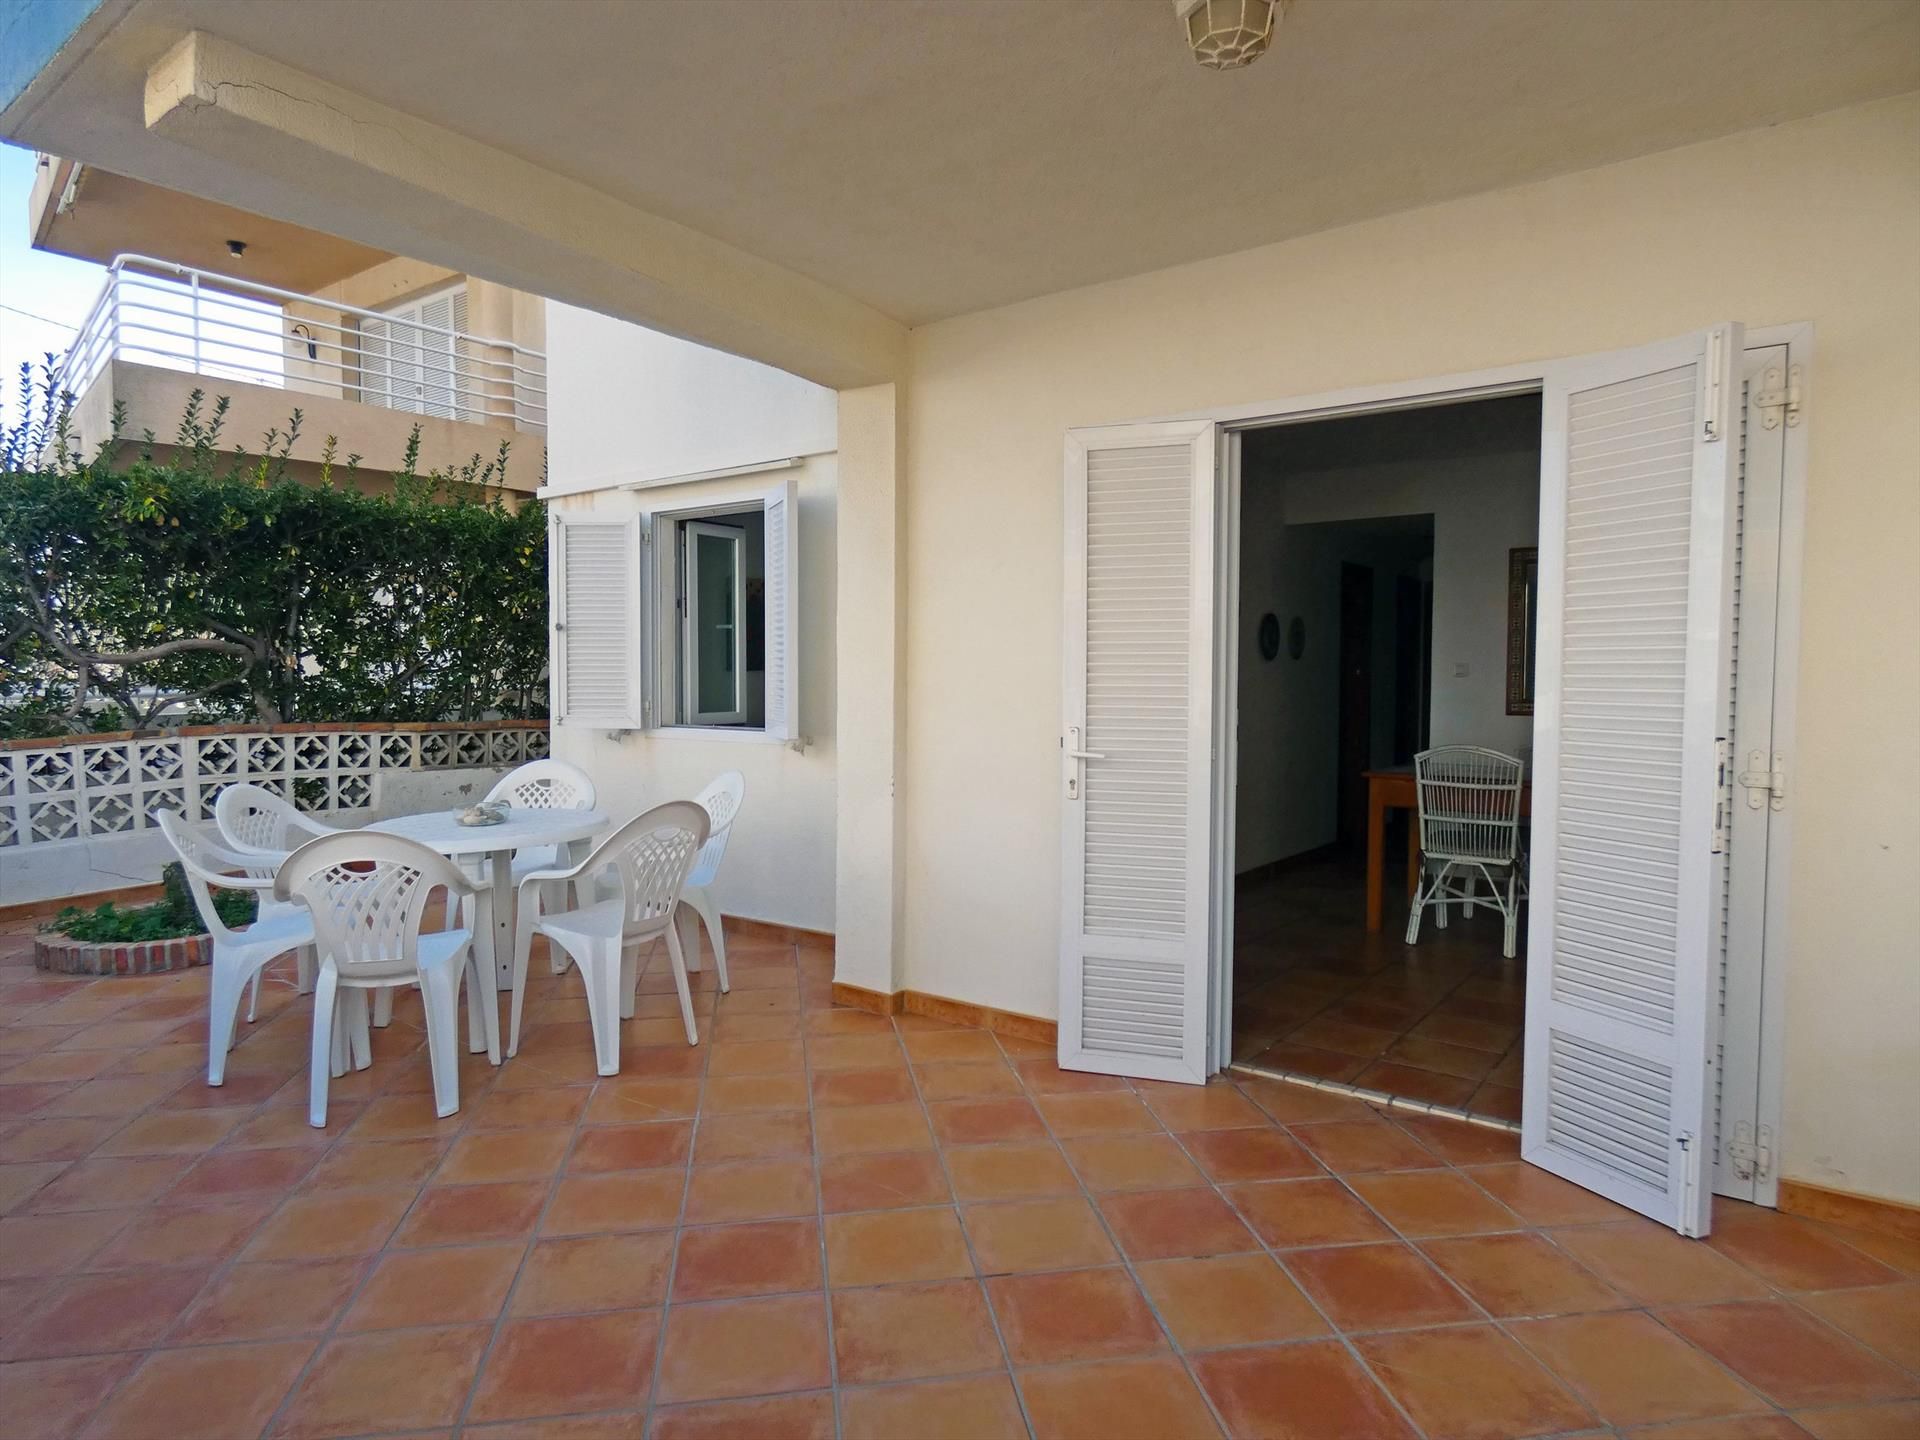 Pedro III Pau Pi PB408,Beautiful and cheerful apartment in Oliva, on the Costa Blanca, Spain for 5 persons.....